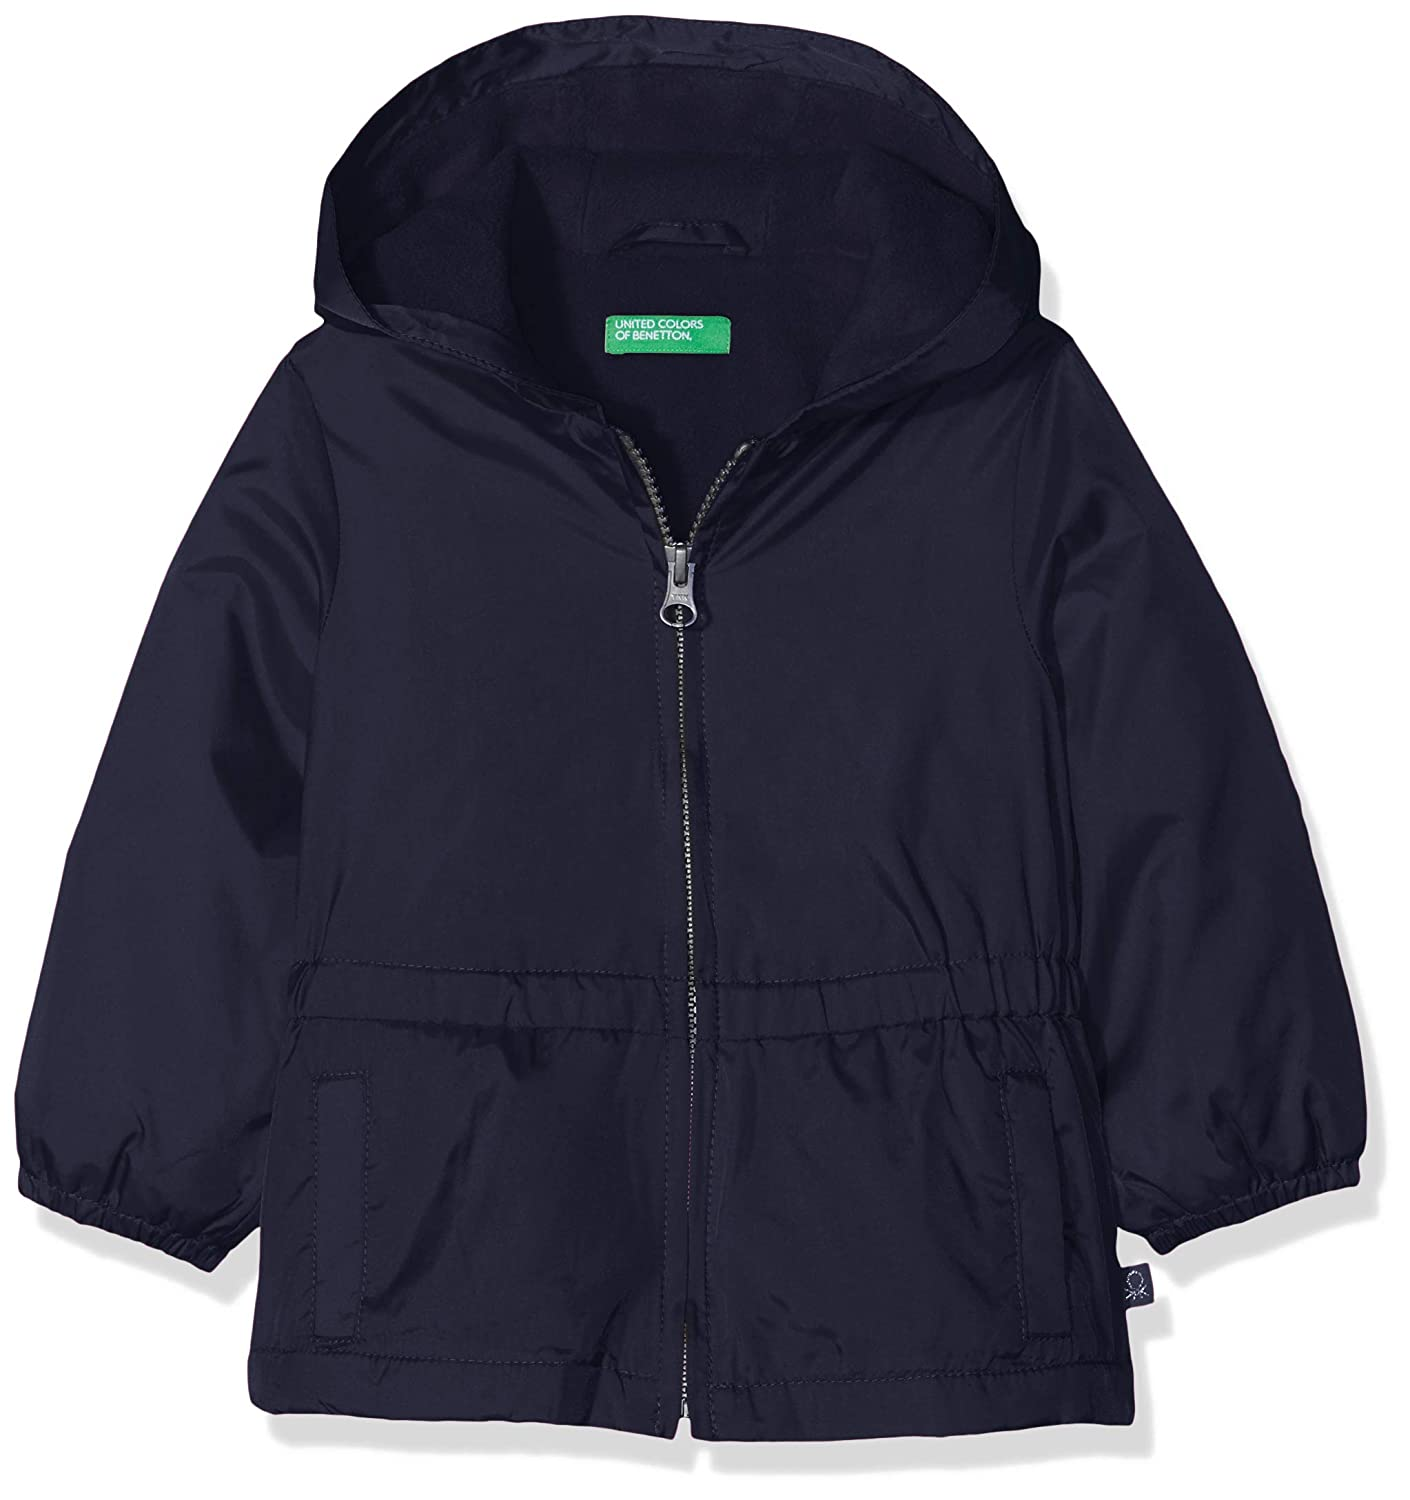 United Colors of Benetton Jacket Giacca Bambina